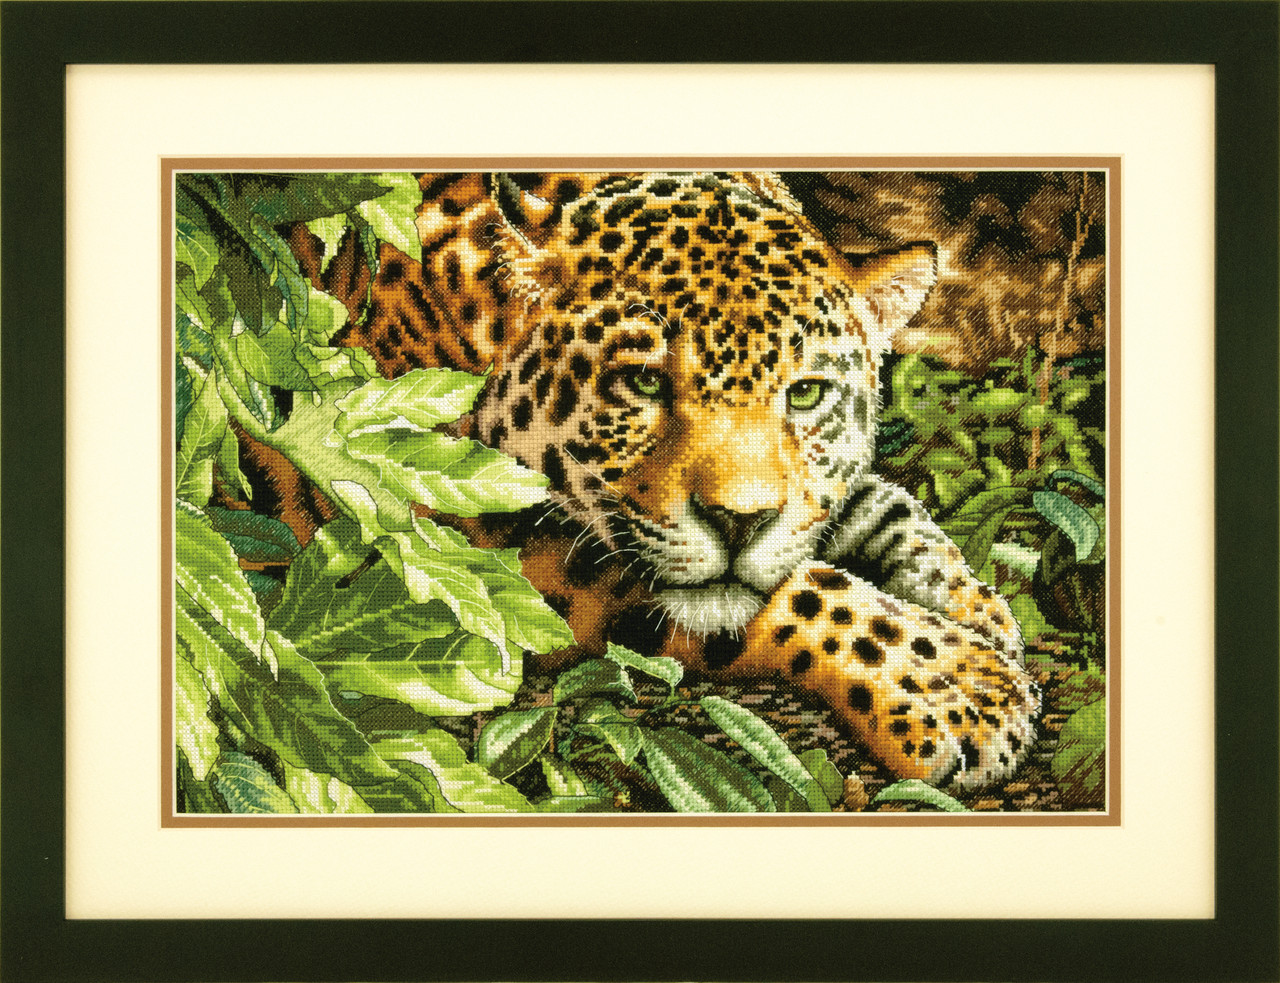 Gold Collection - Leopard in Repose